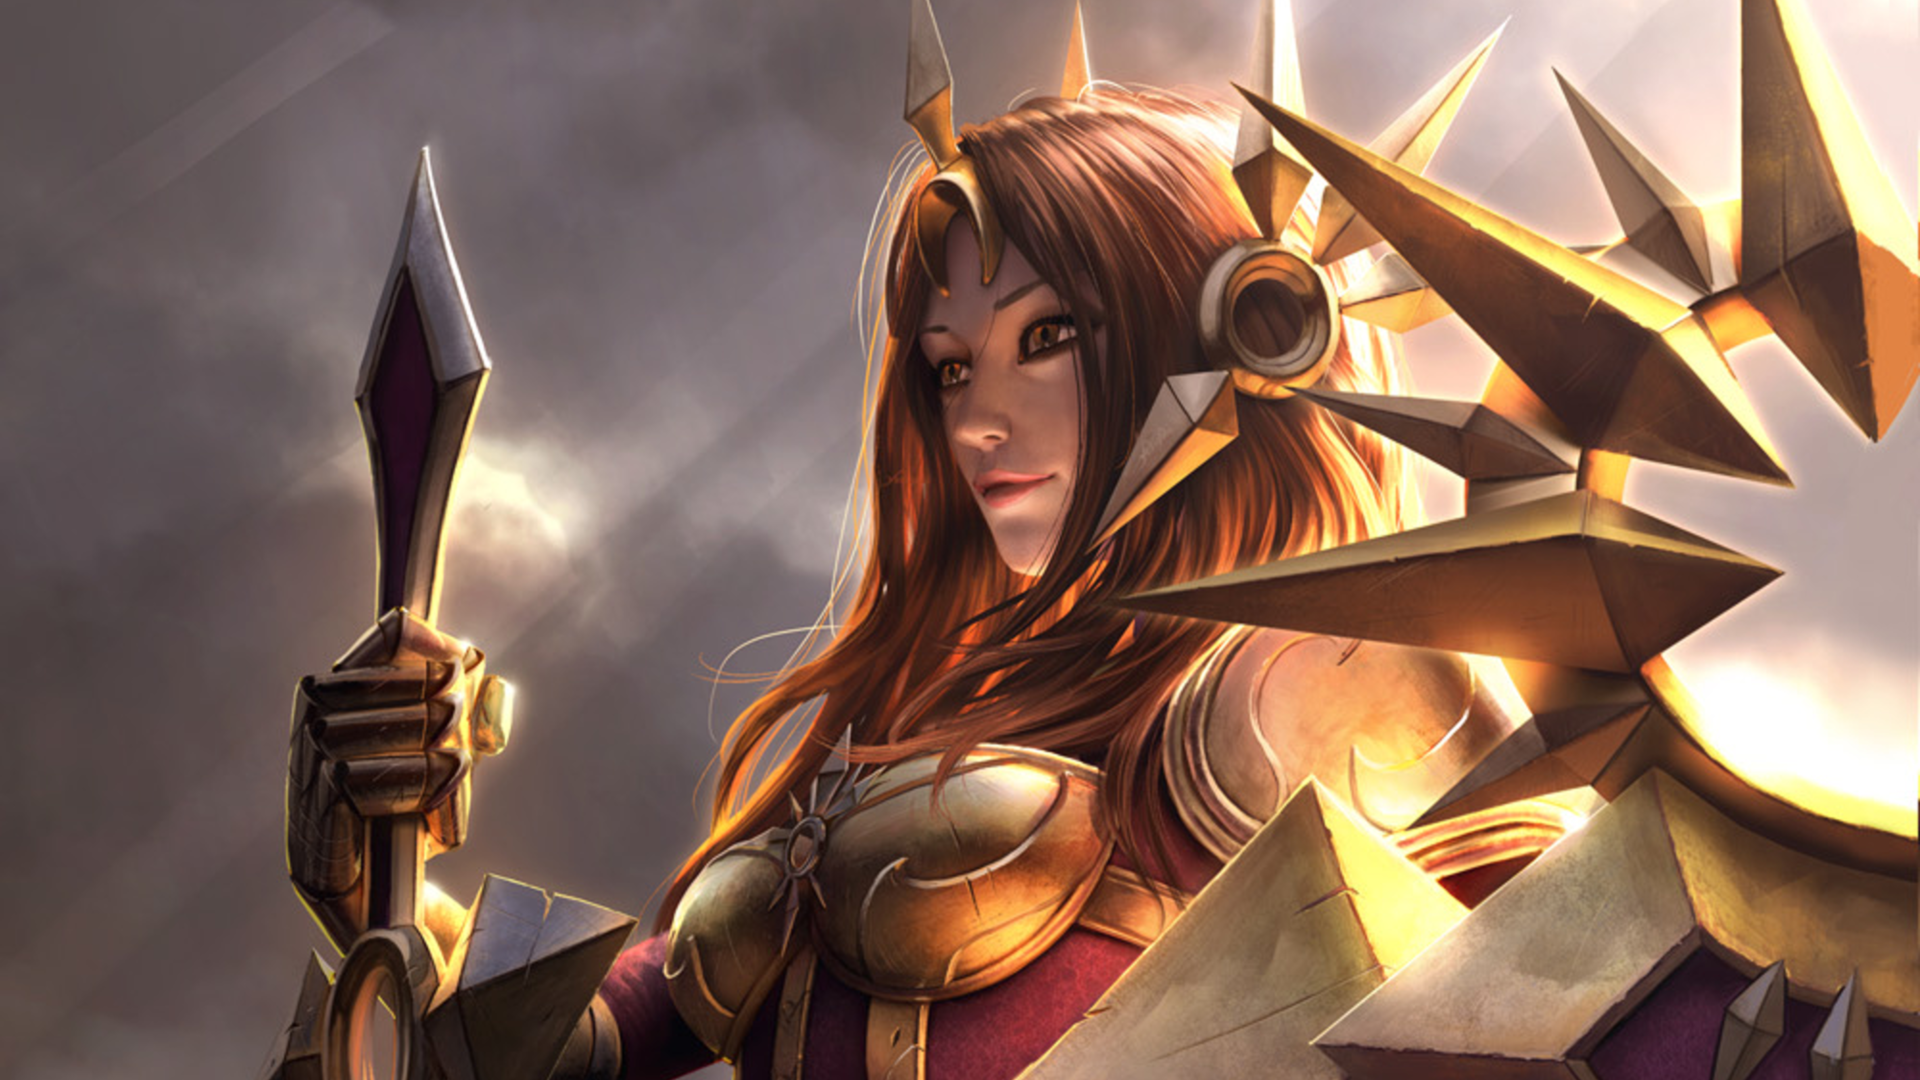 League Of Legends Hd Wallpaper Hintergrund 1920x1080 Id590232